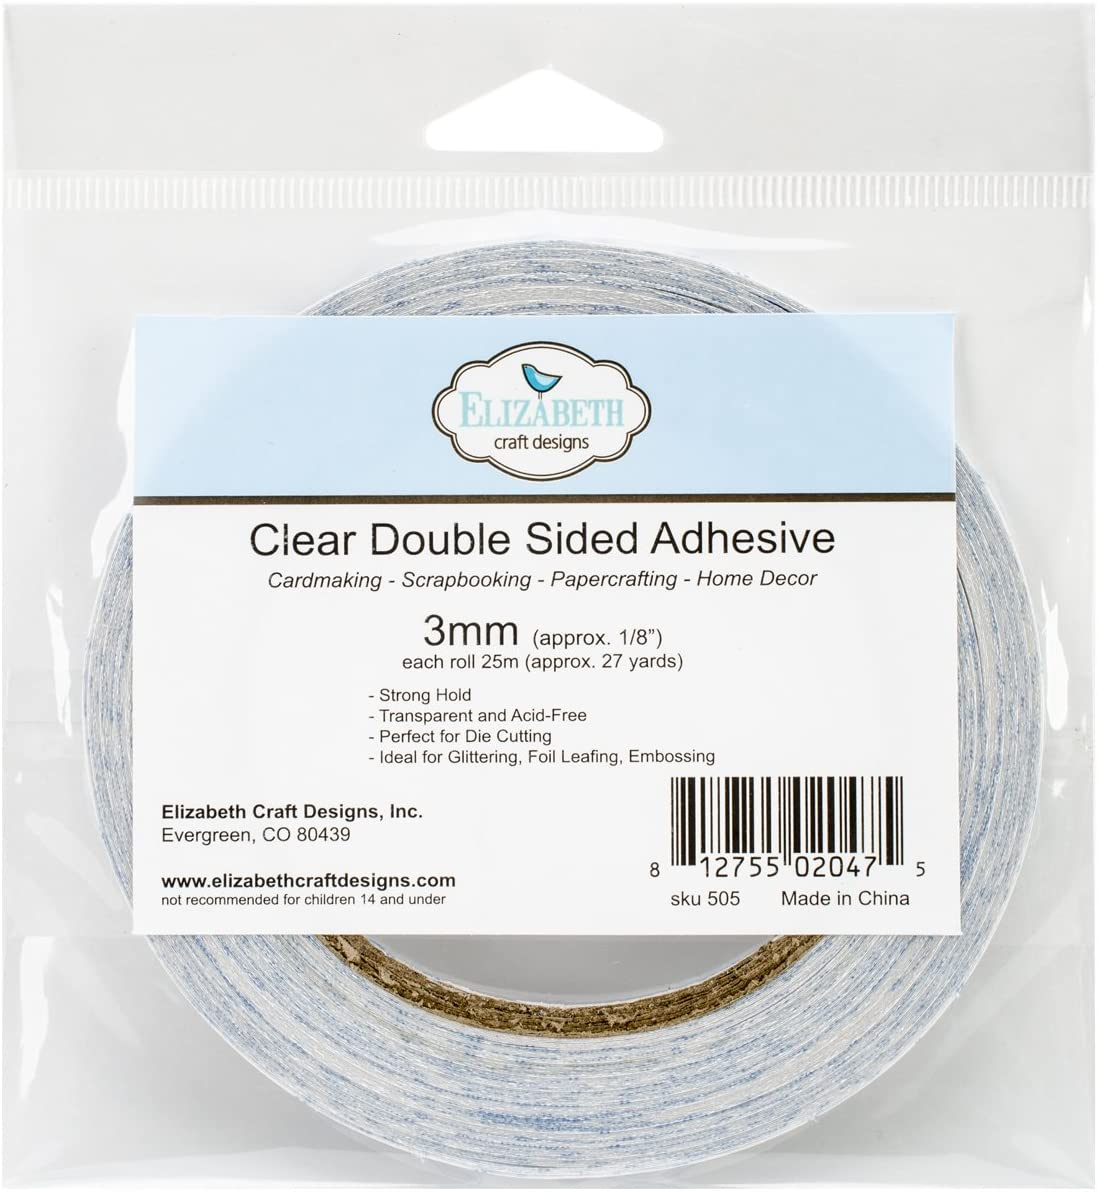 Elizabeth Craft Designs 2mm Double-Sided Adhesive Roll, 1/8